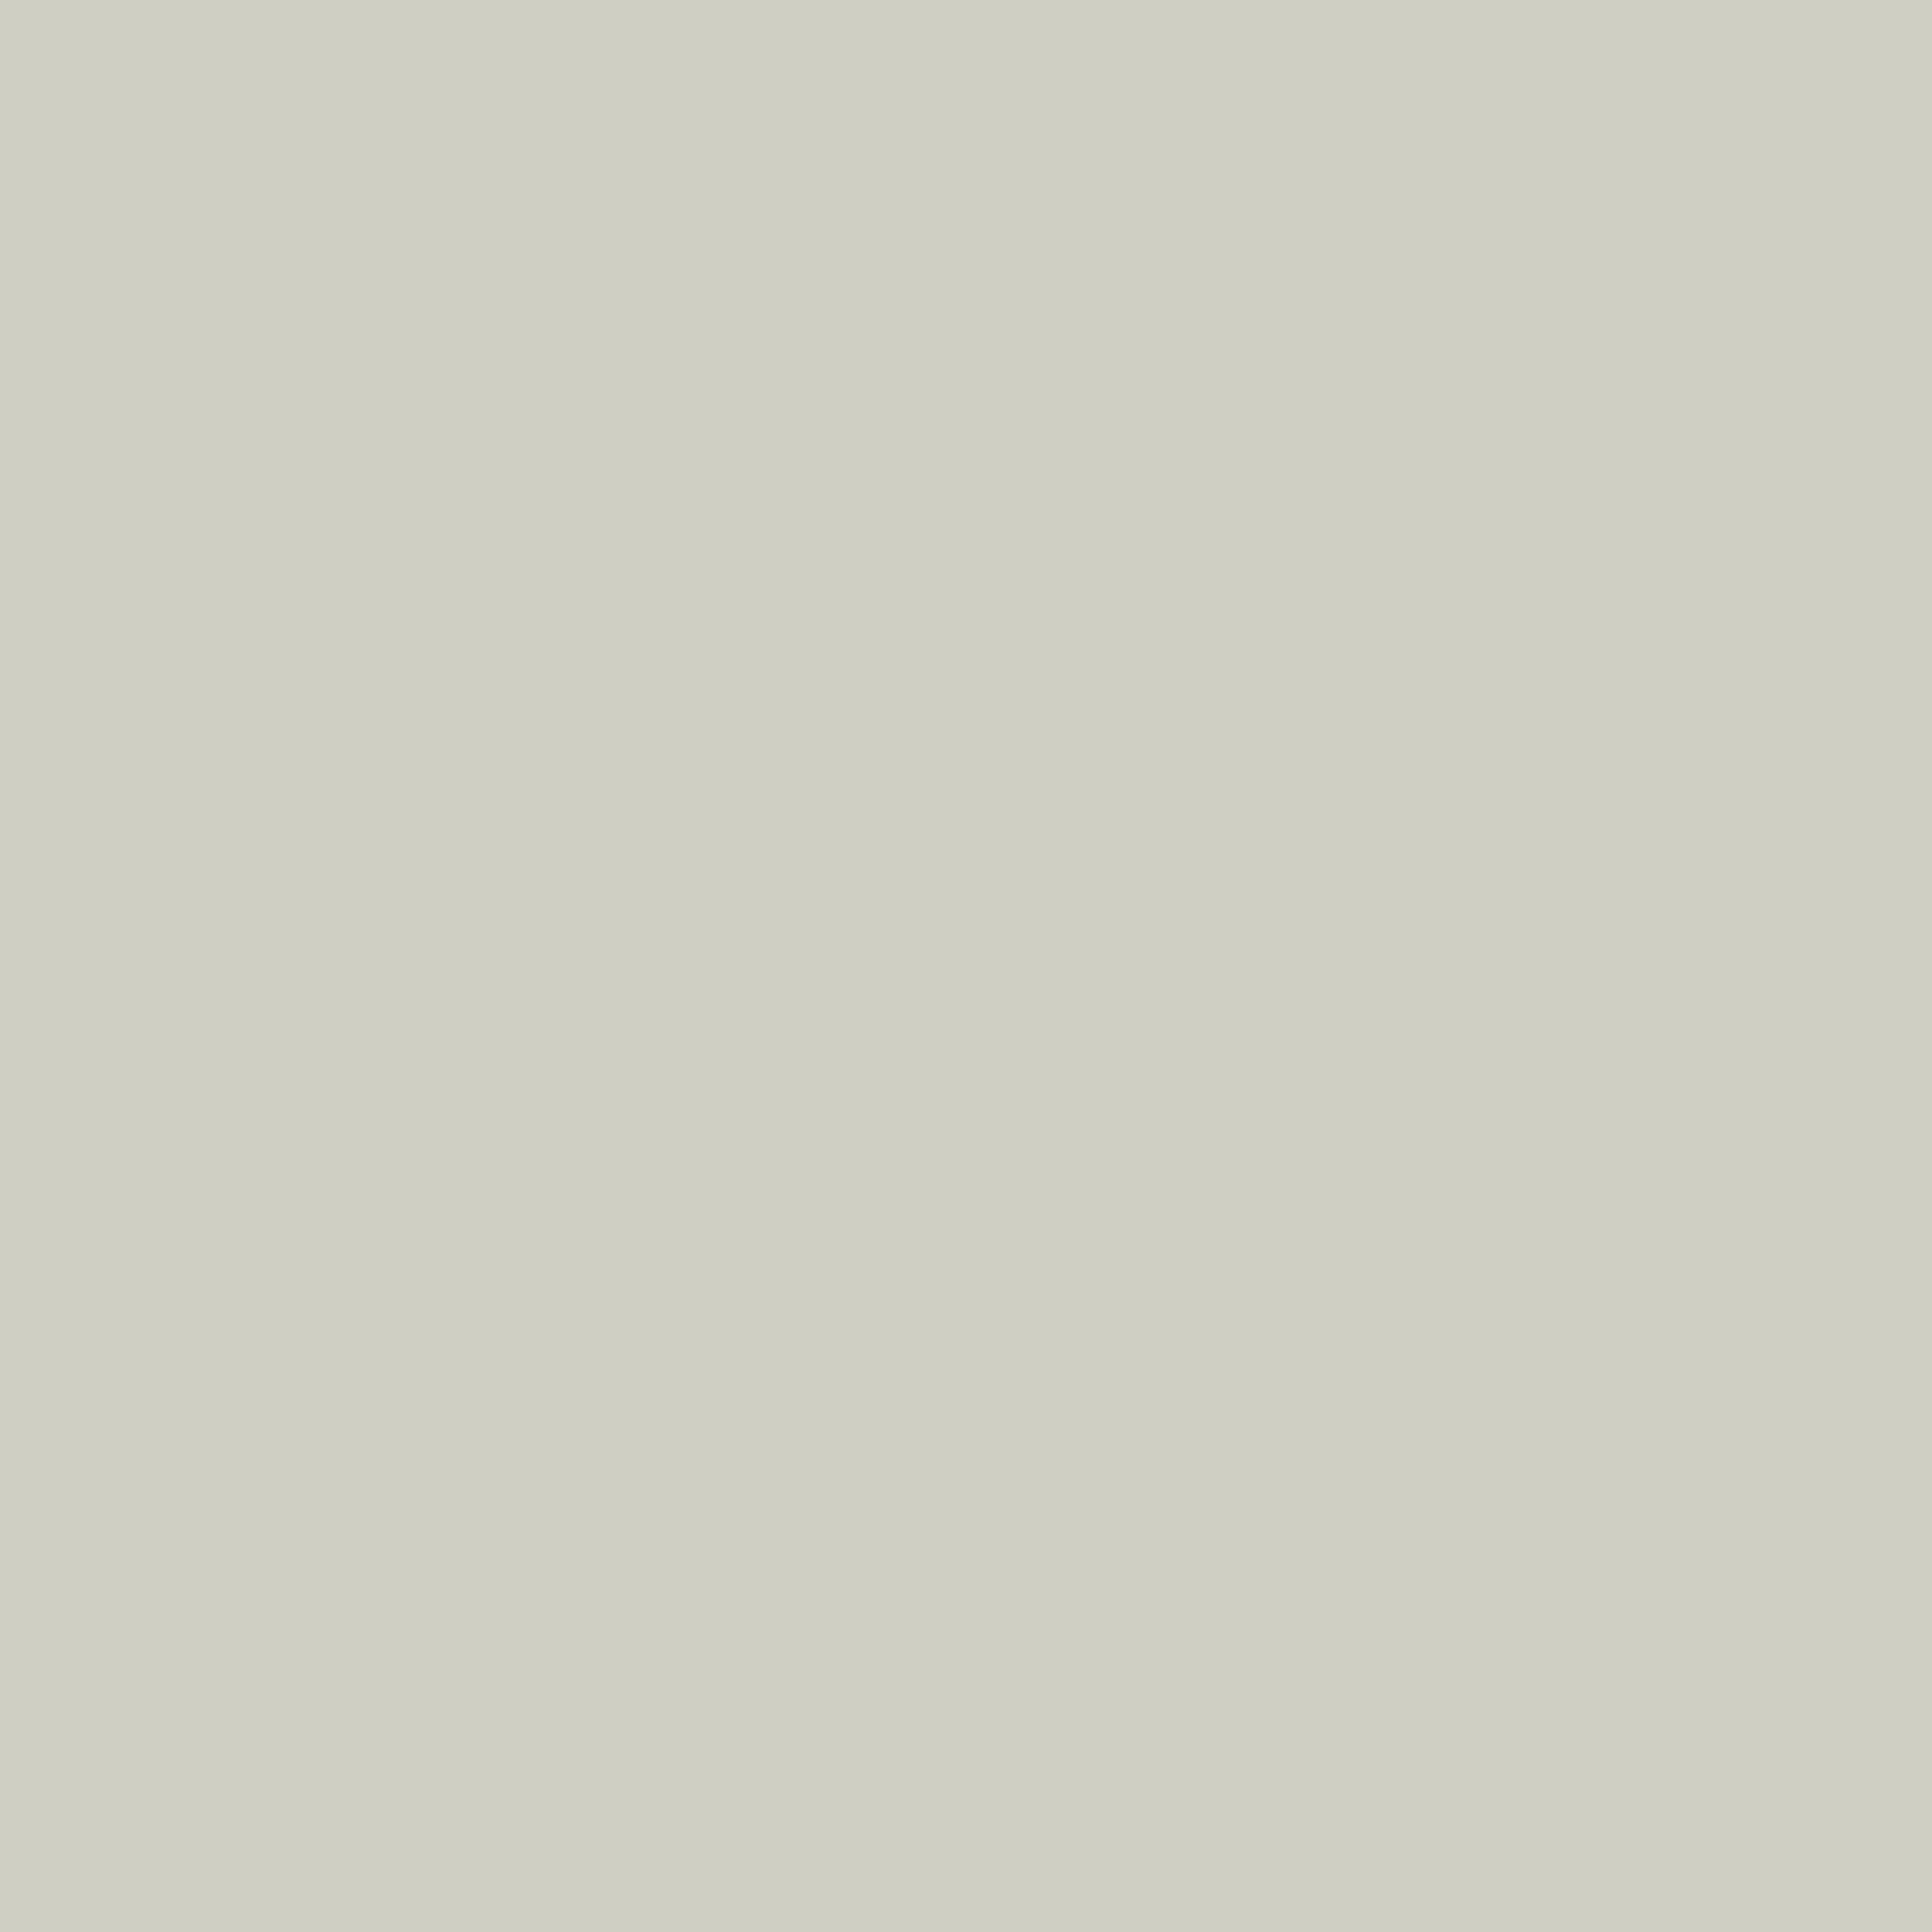 3600x3600 Pastel Gray Solid Color Background